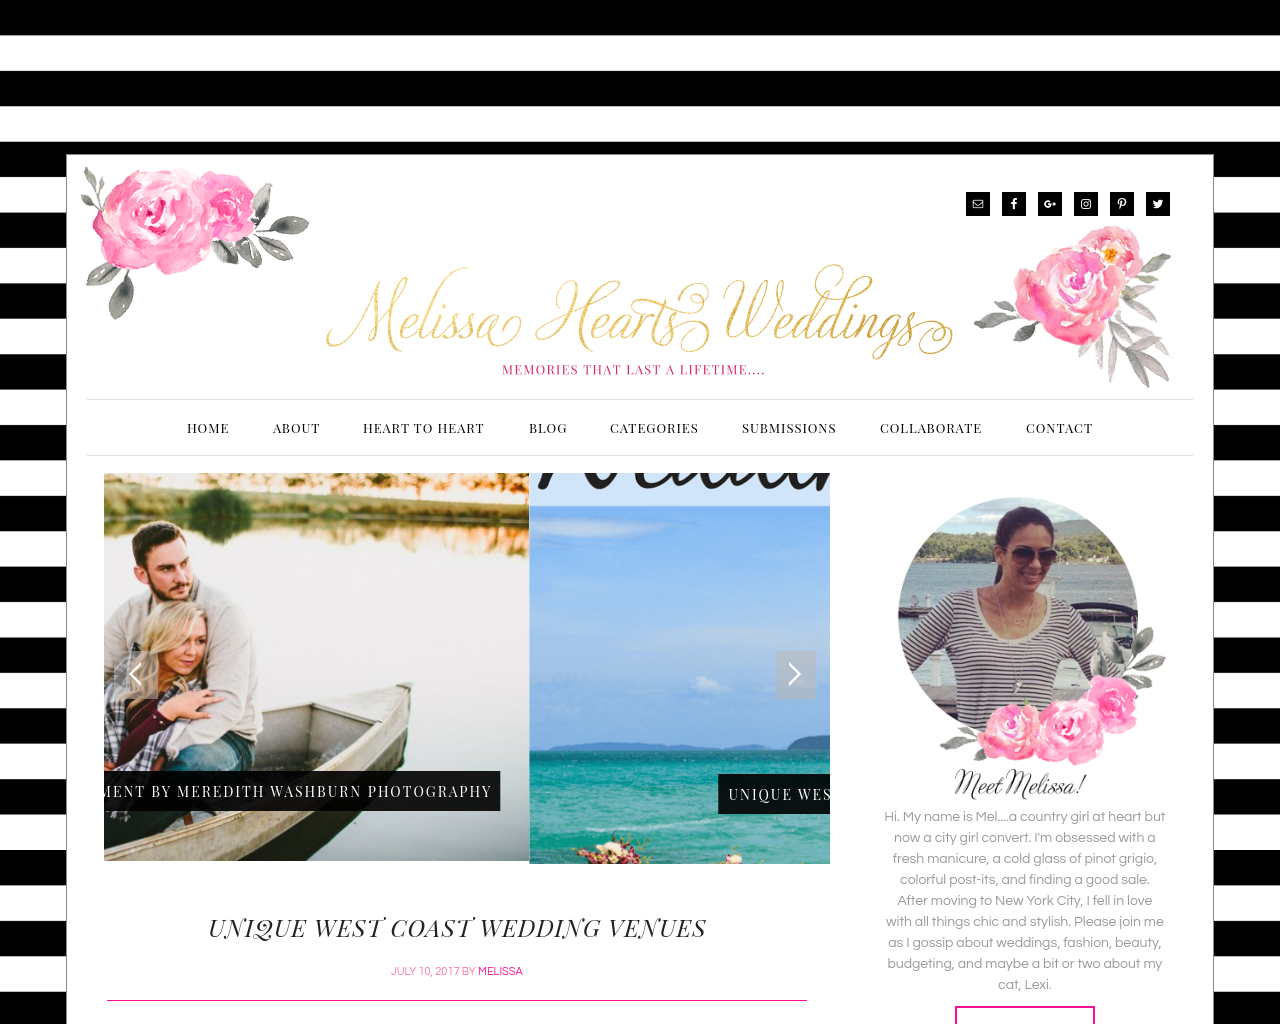 Melissa-Hearts-Weddings-Advertising-Reviews-Pricing